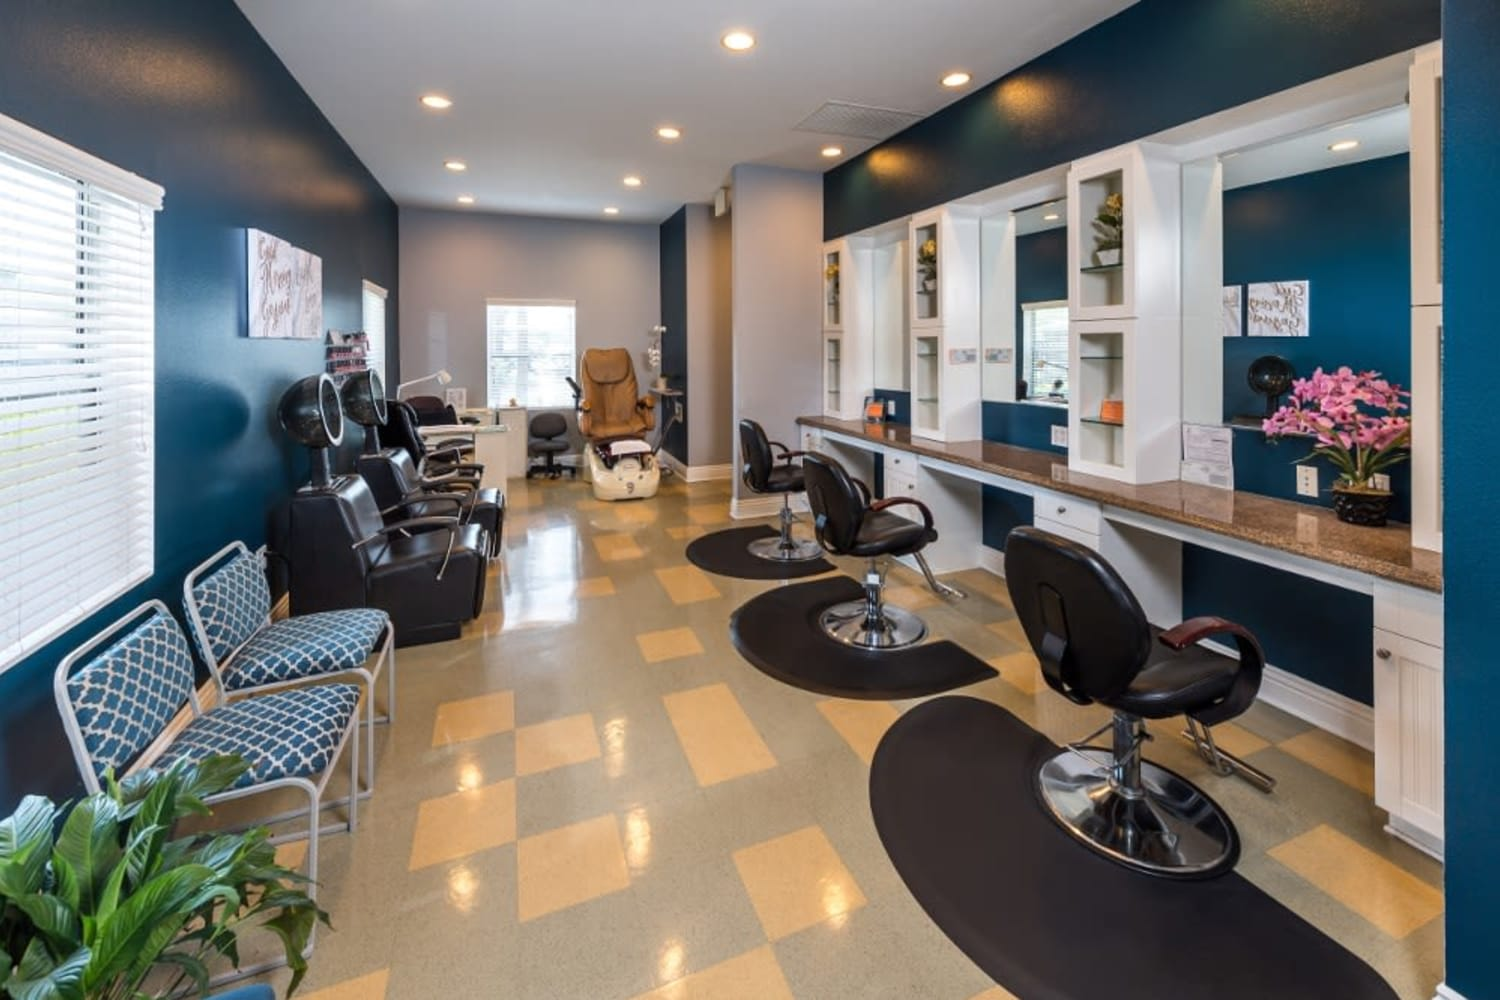 Enjoy access to a hair salon at Village on the Green in Rancho Cucamonga, California